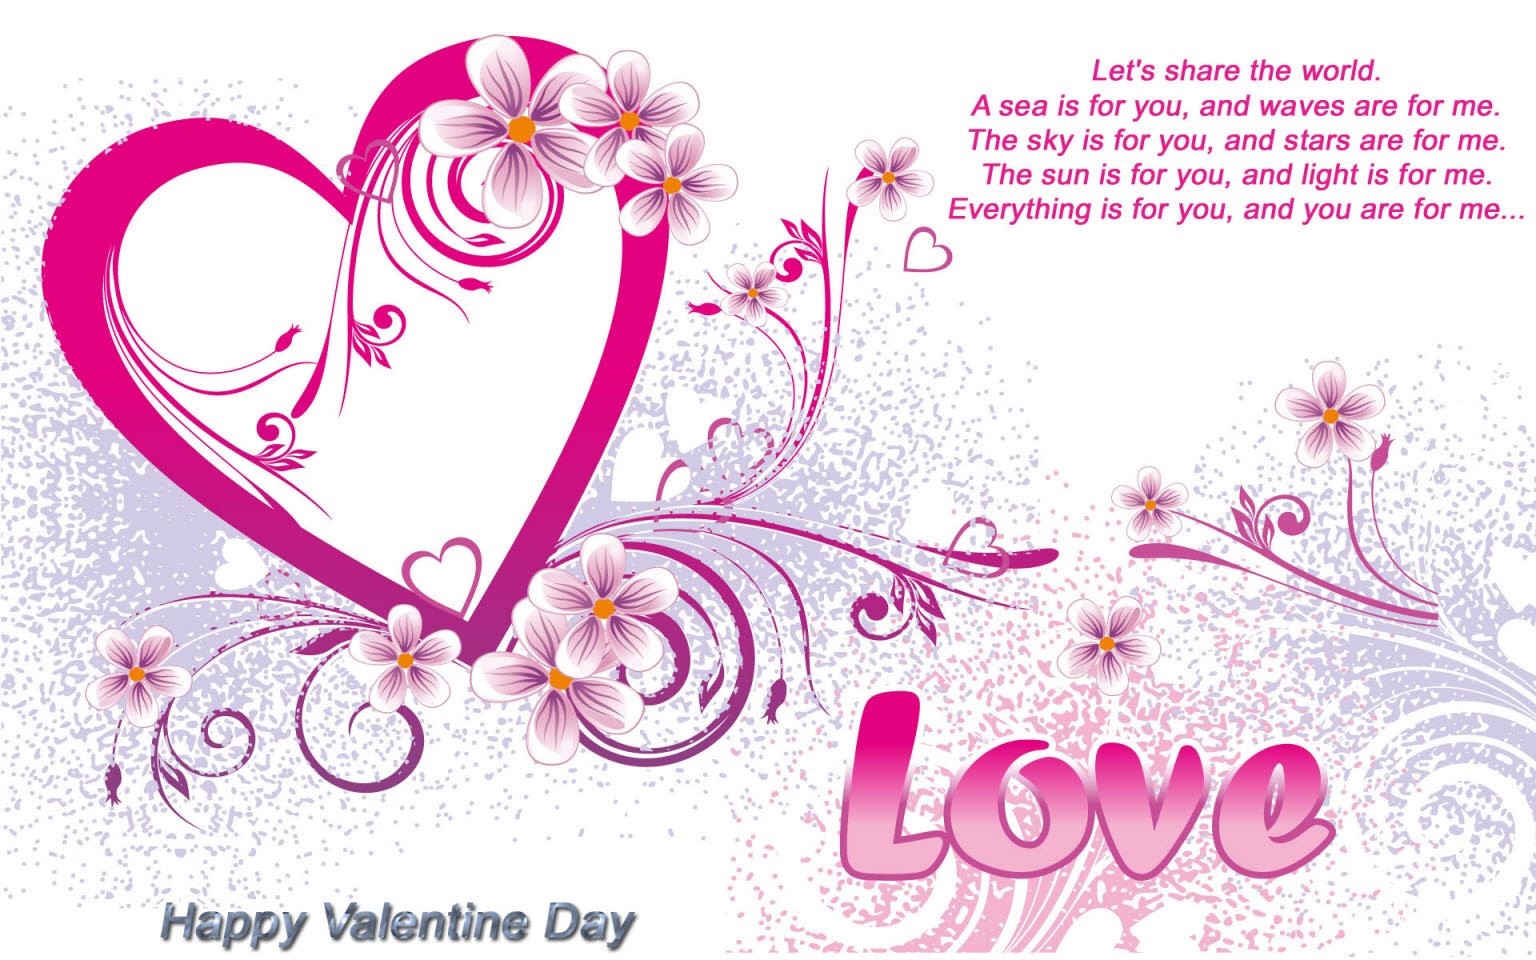 Happy Valentines Greetings 2017 for Friends BFs GFs – Images of Valentine Day Greeting Cards